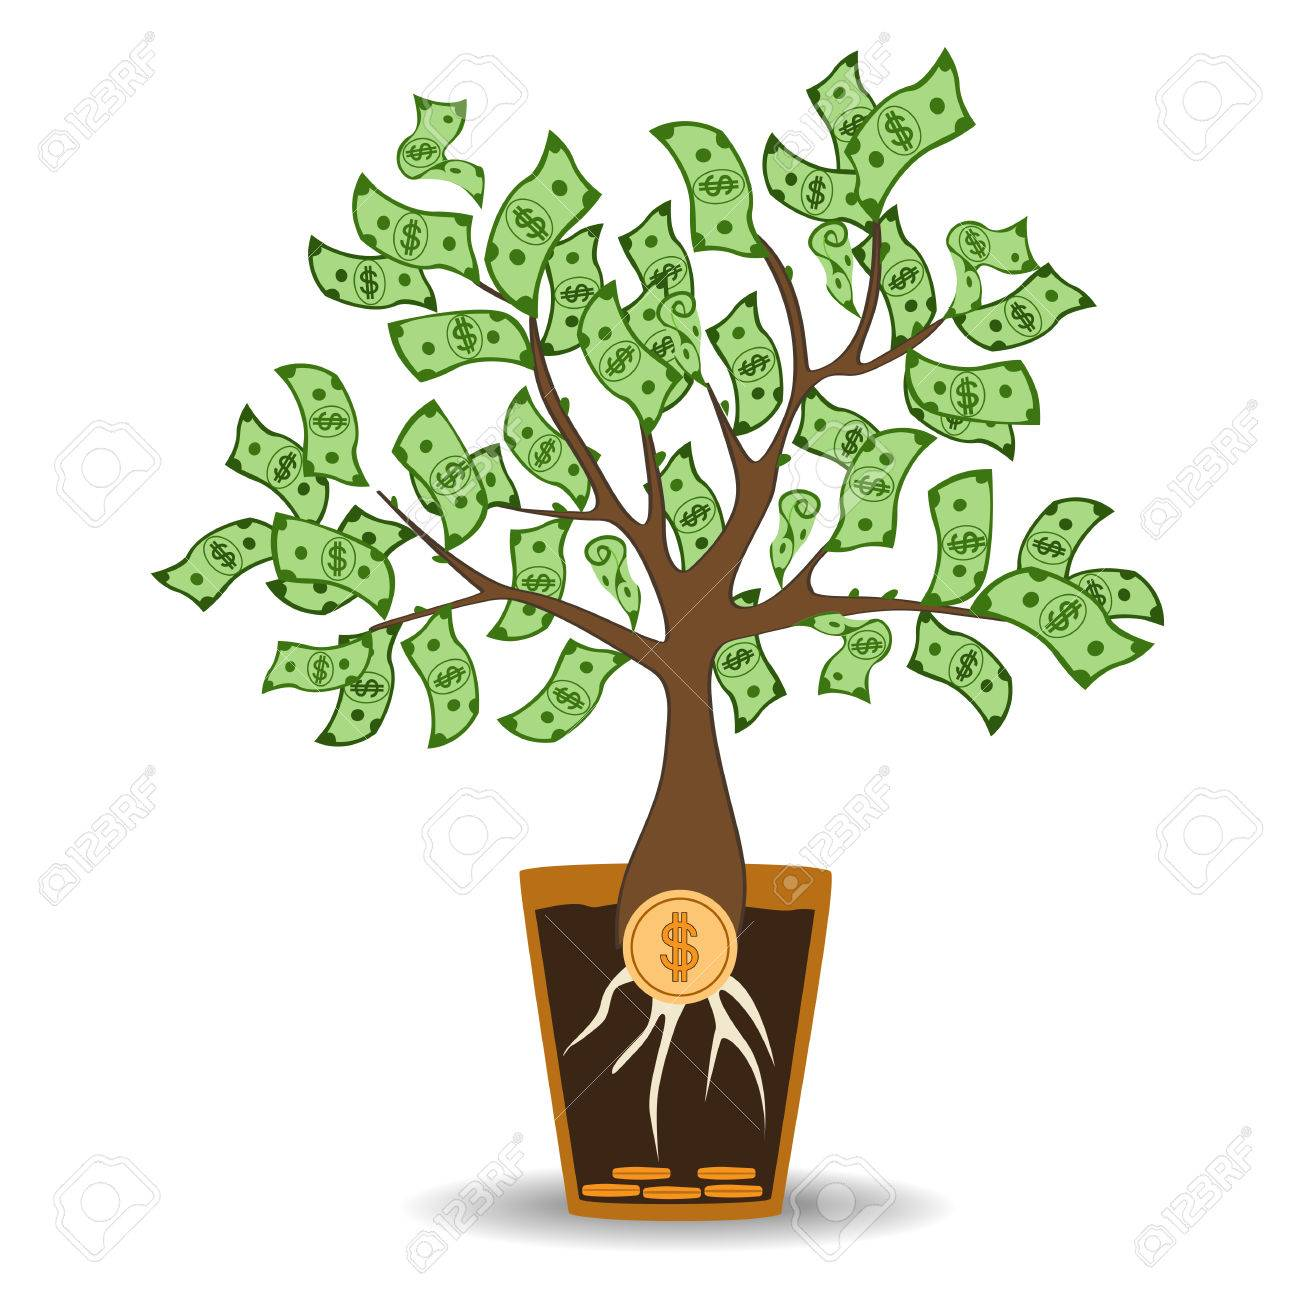 money tree growing from a coin root green cash banknotes tree rh 123rf com Stages of Change Clip Art Garden Clip Art